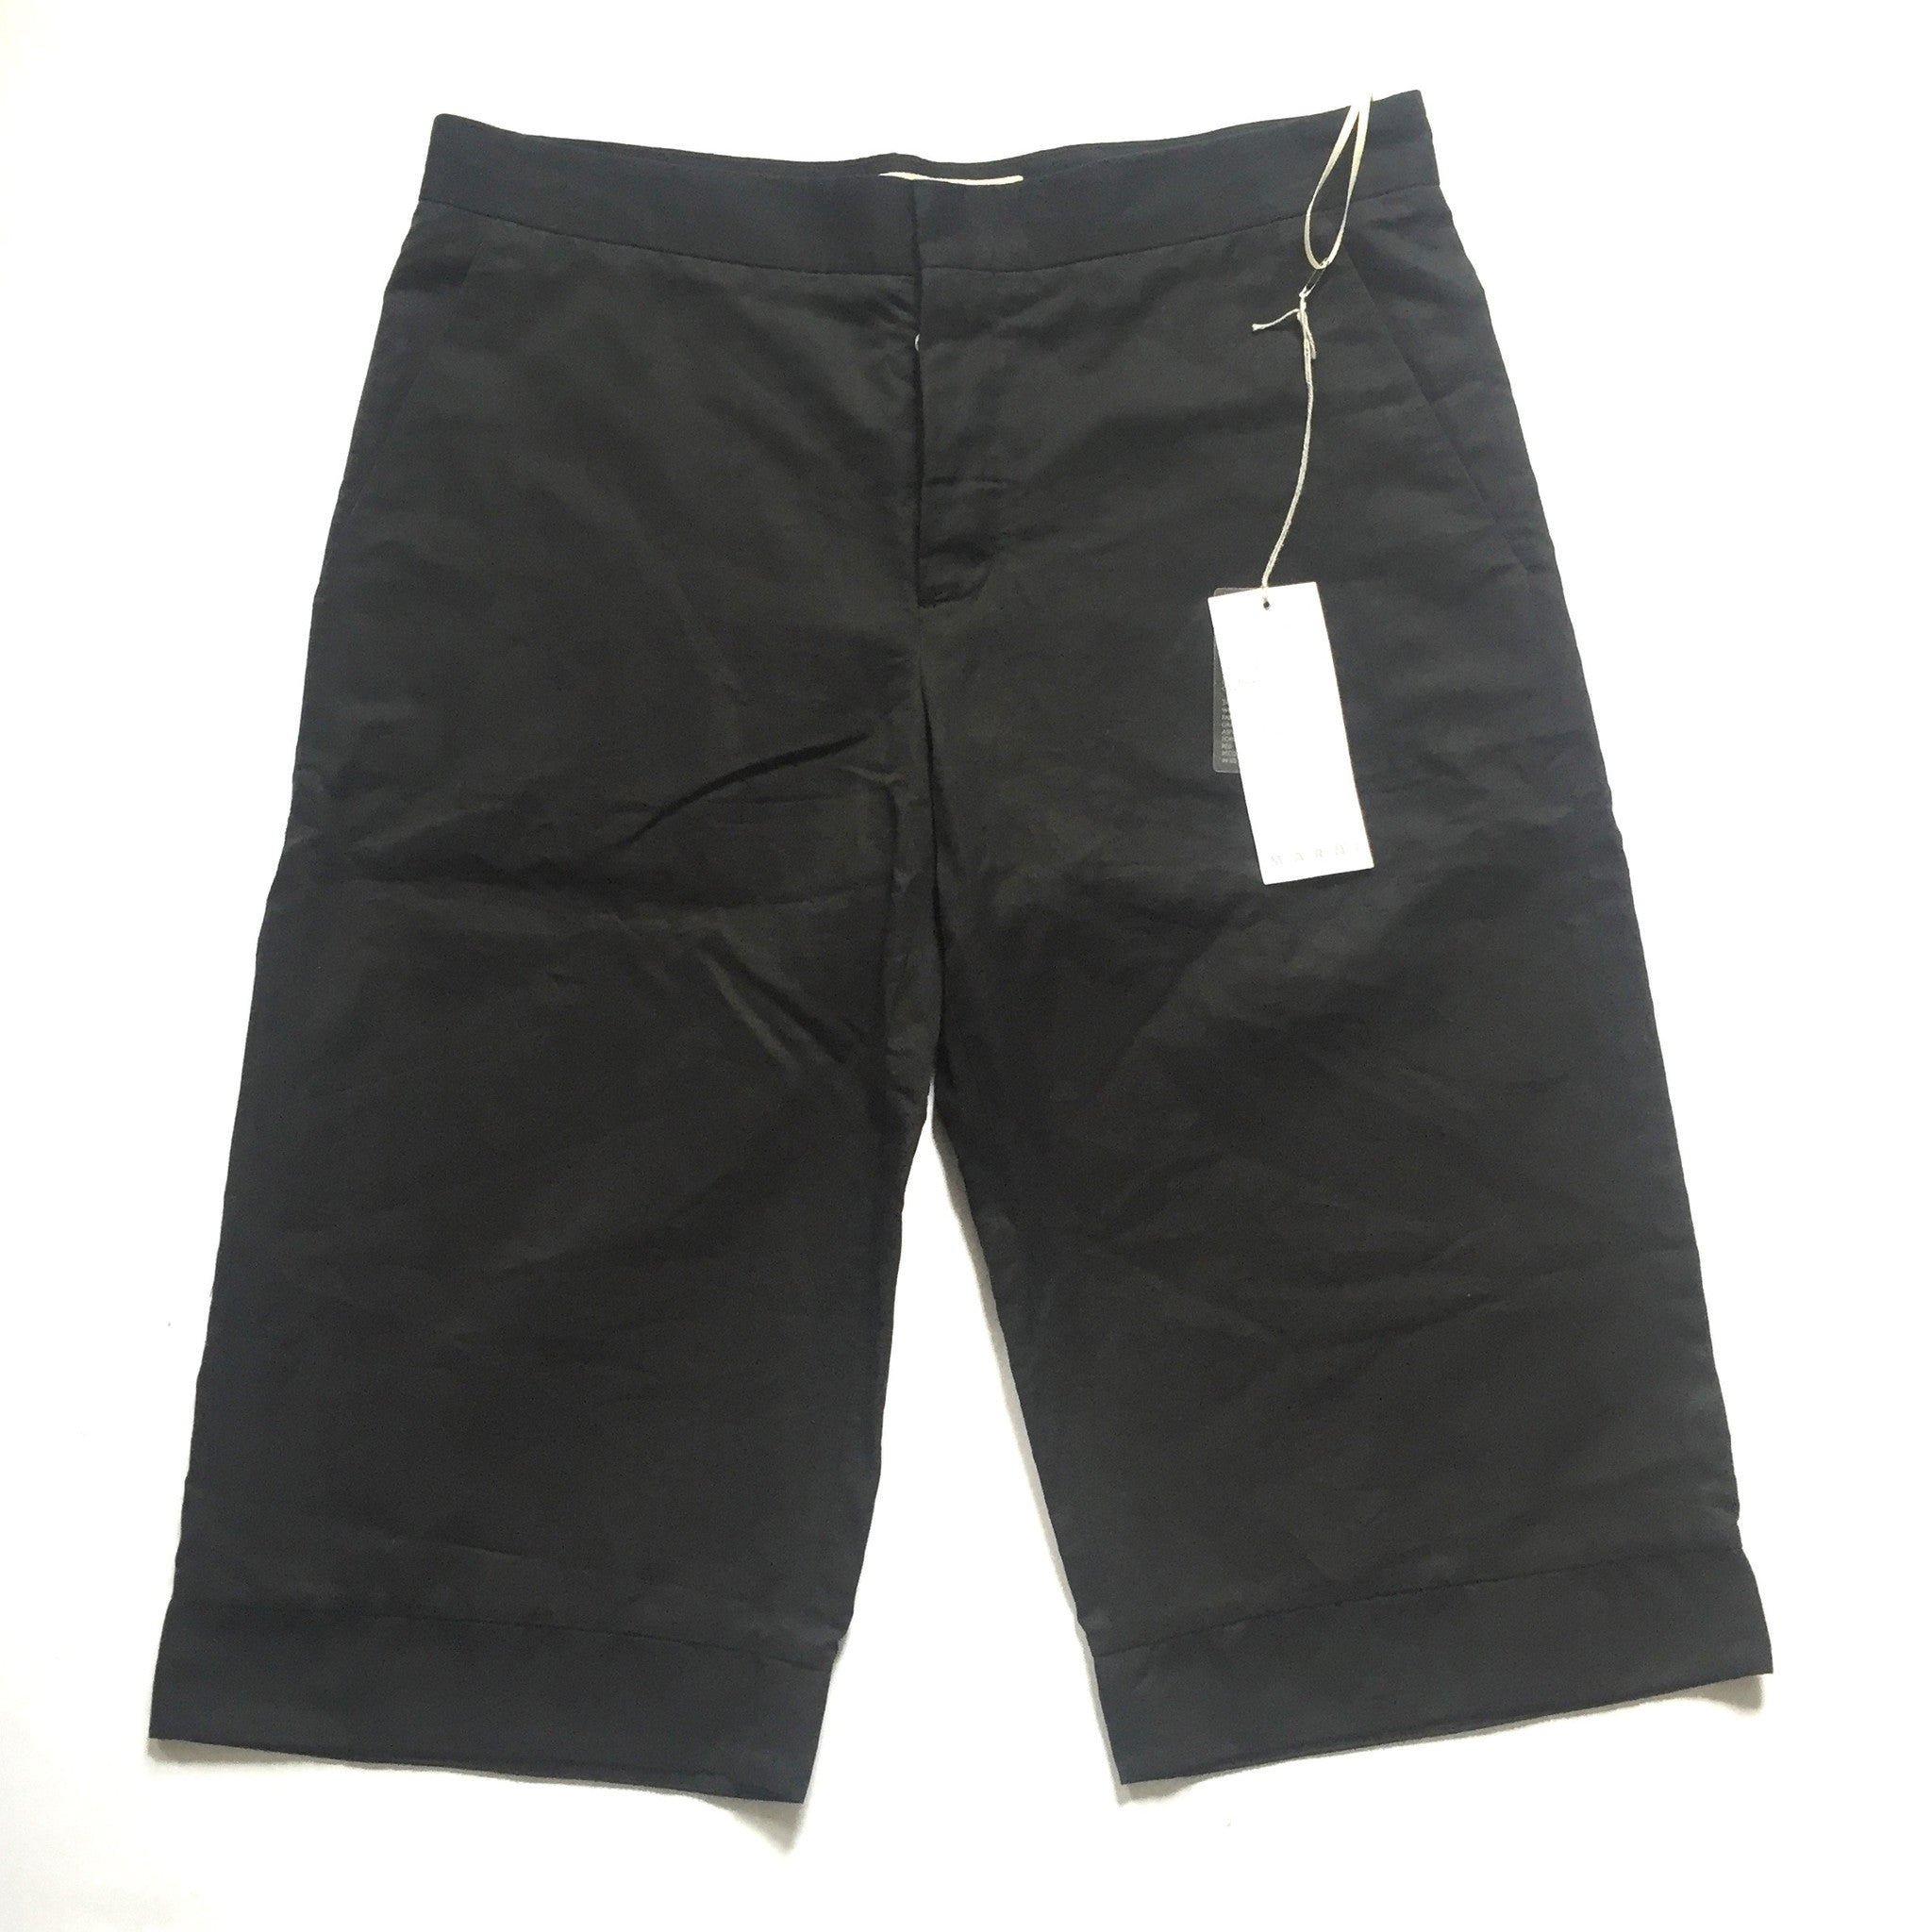 Marni - Oversized Black Cotton Shorts